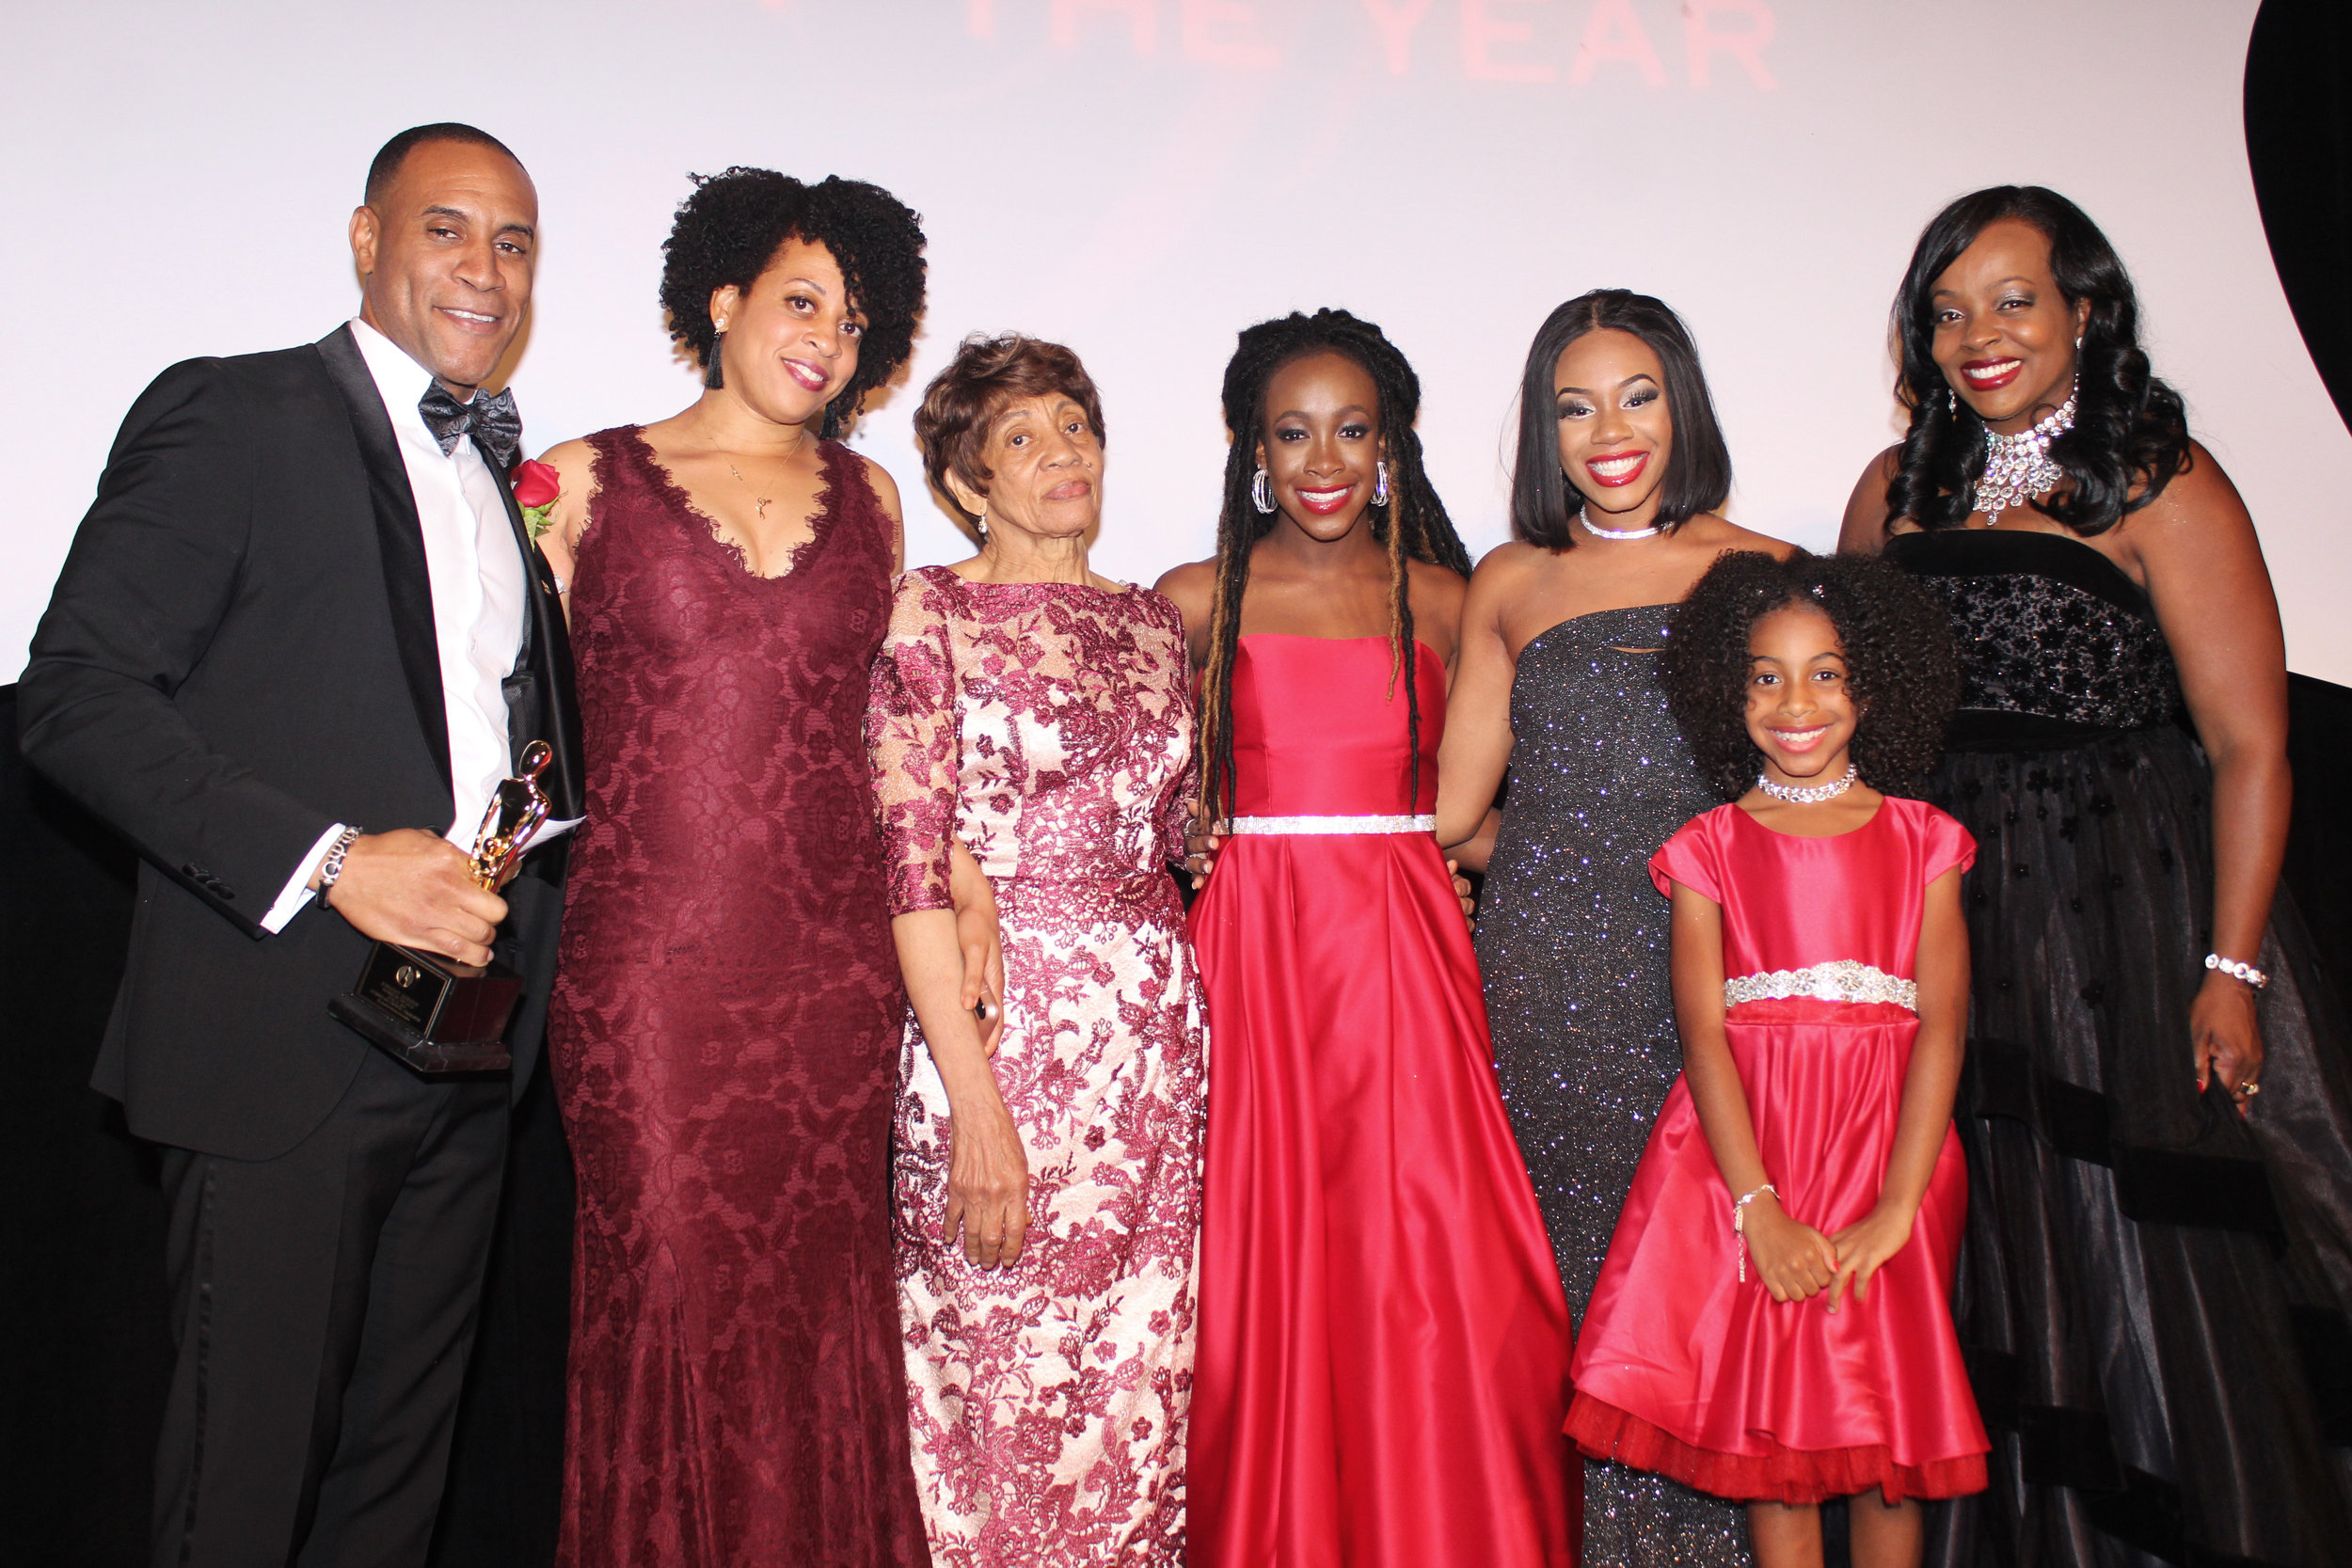 Father of the Year Dwight Gibson surrounded by his family.